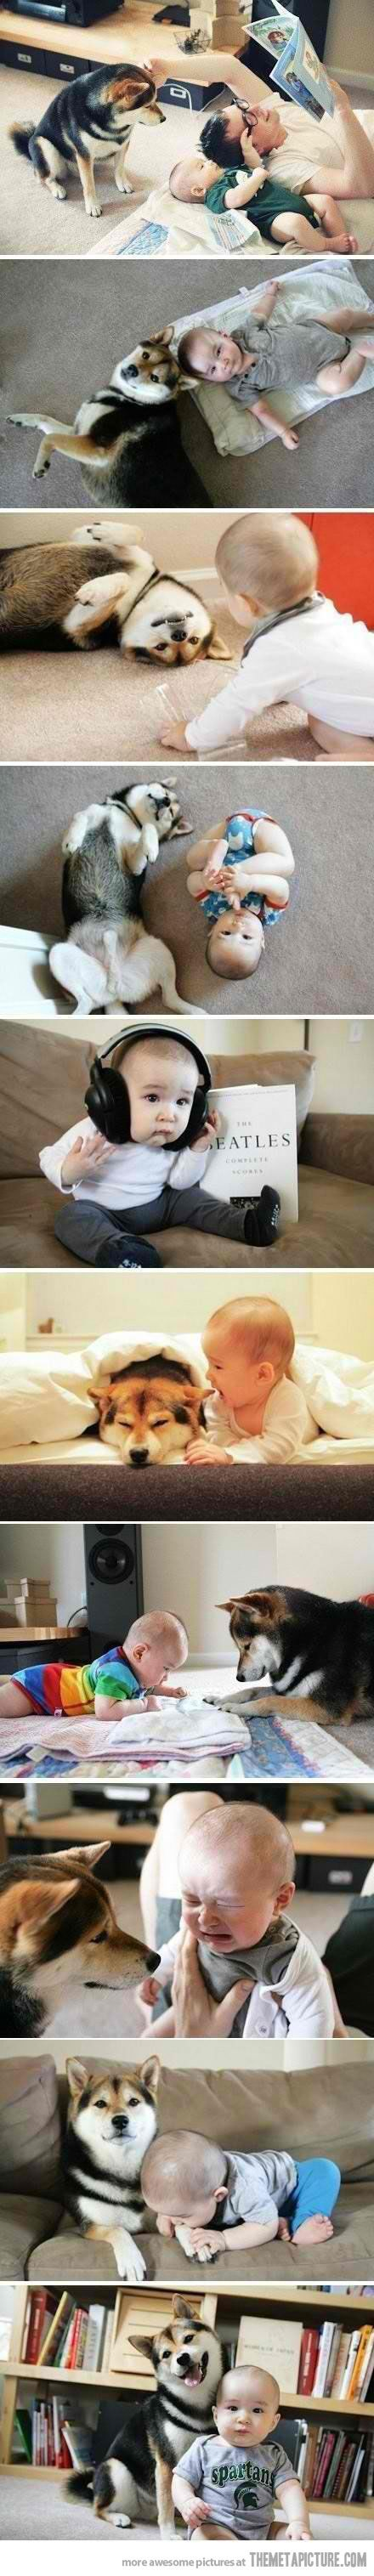 destined to be best friends.